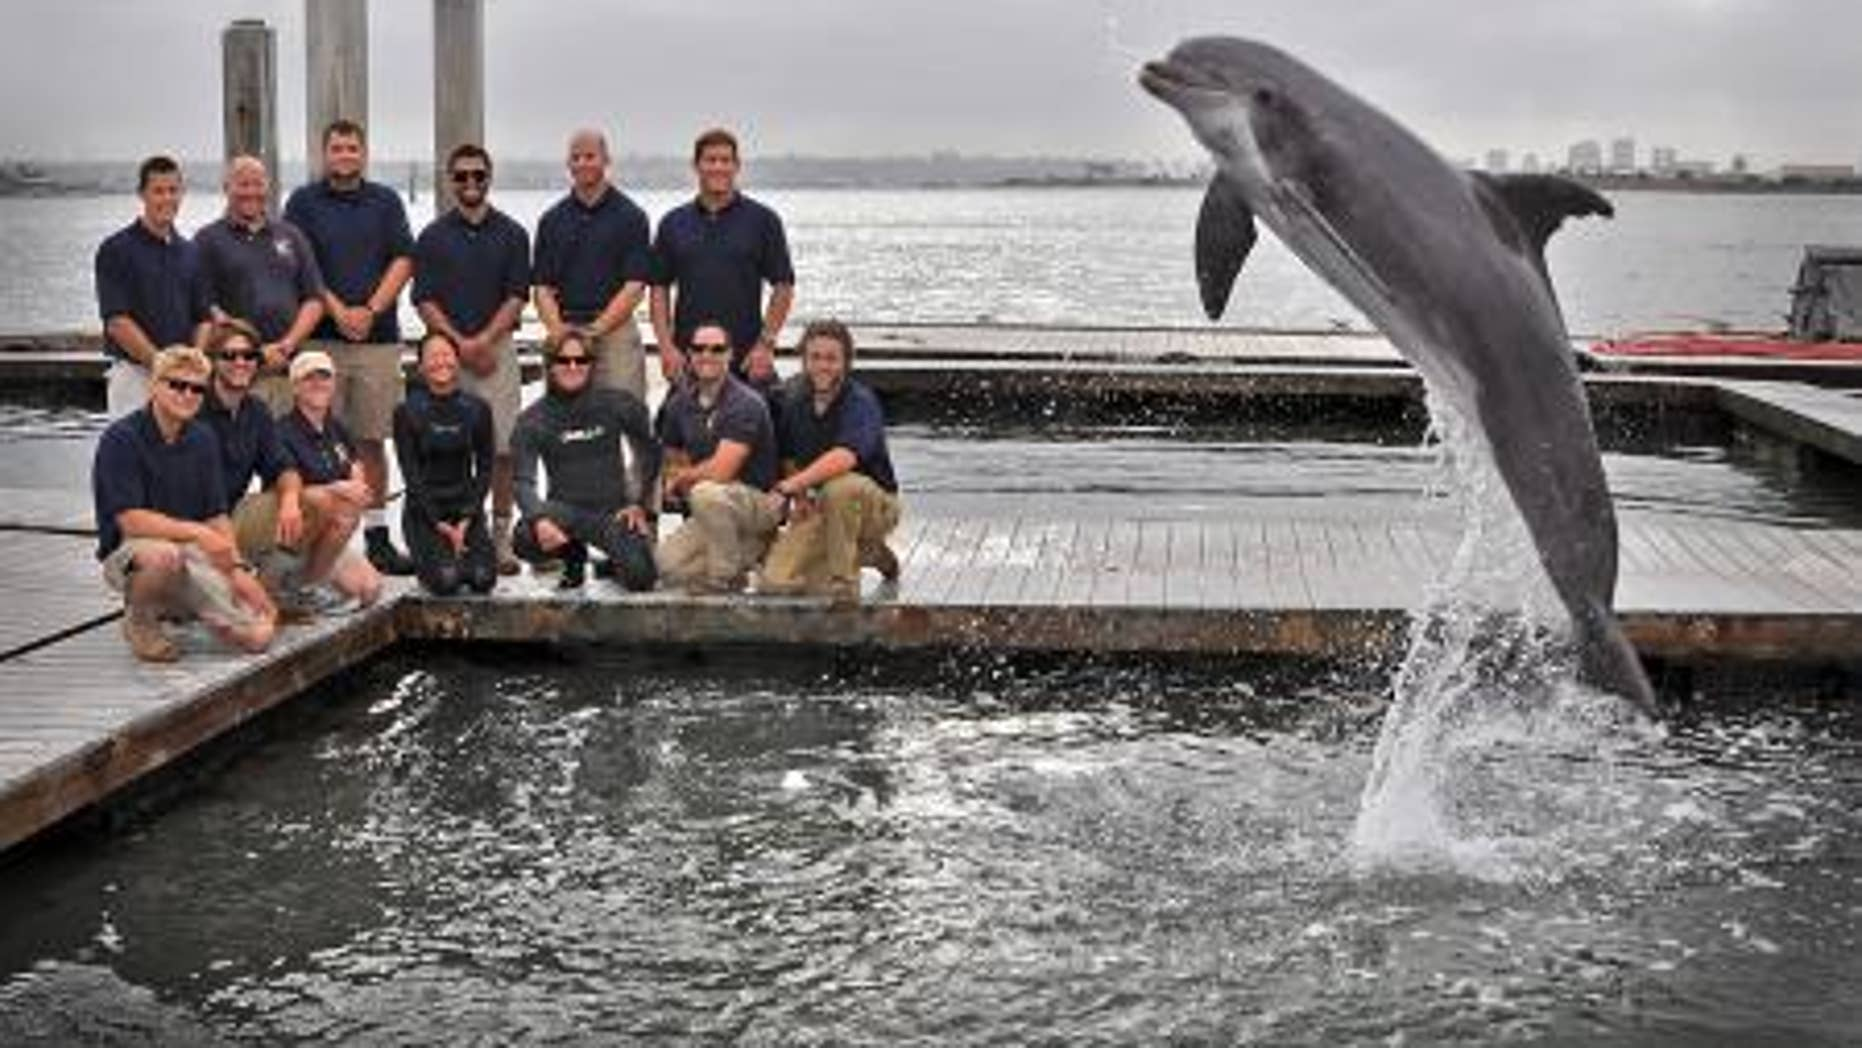 Members of the Space and Naval Warfare Systems Center Pacific Marine Mammal Team pose May 15, 2013, with one of the Navy's specially trained Atlantic bottle-nosed dolphins. The team, along with the dolphin, are responsible for the discovery and